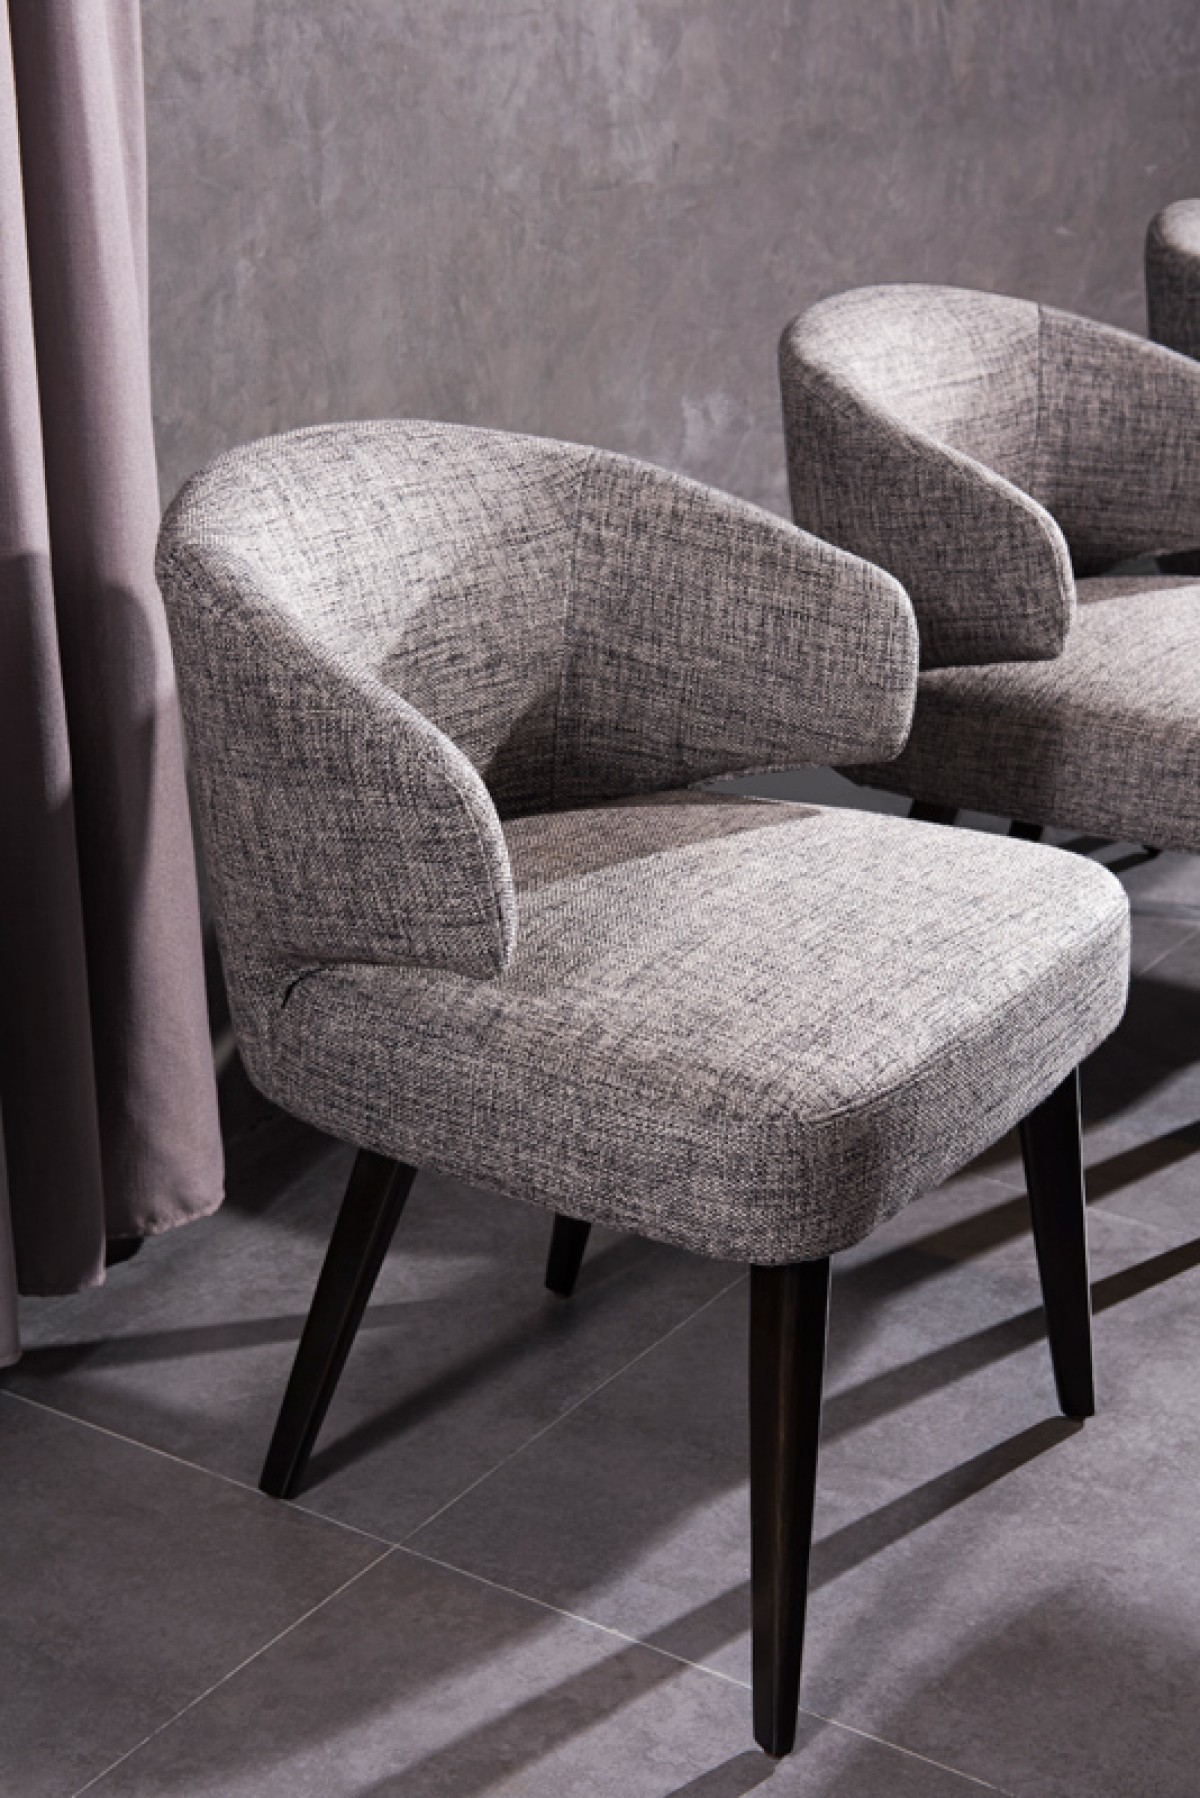 Modrest carlton modern grey fabric dining chair dining chairs dining - Grey fabric dining room chairs designs ...